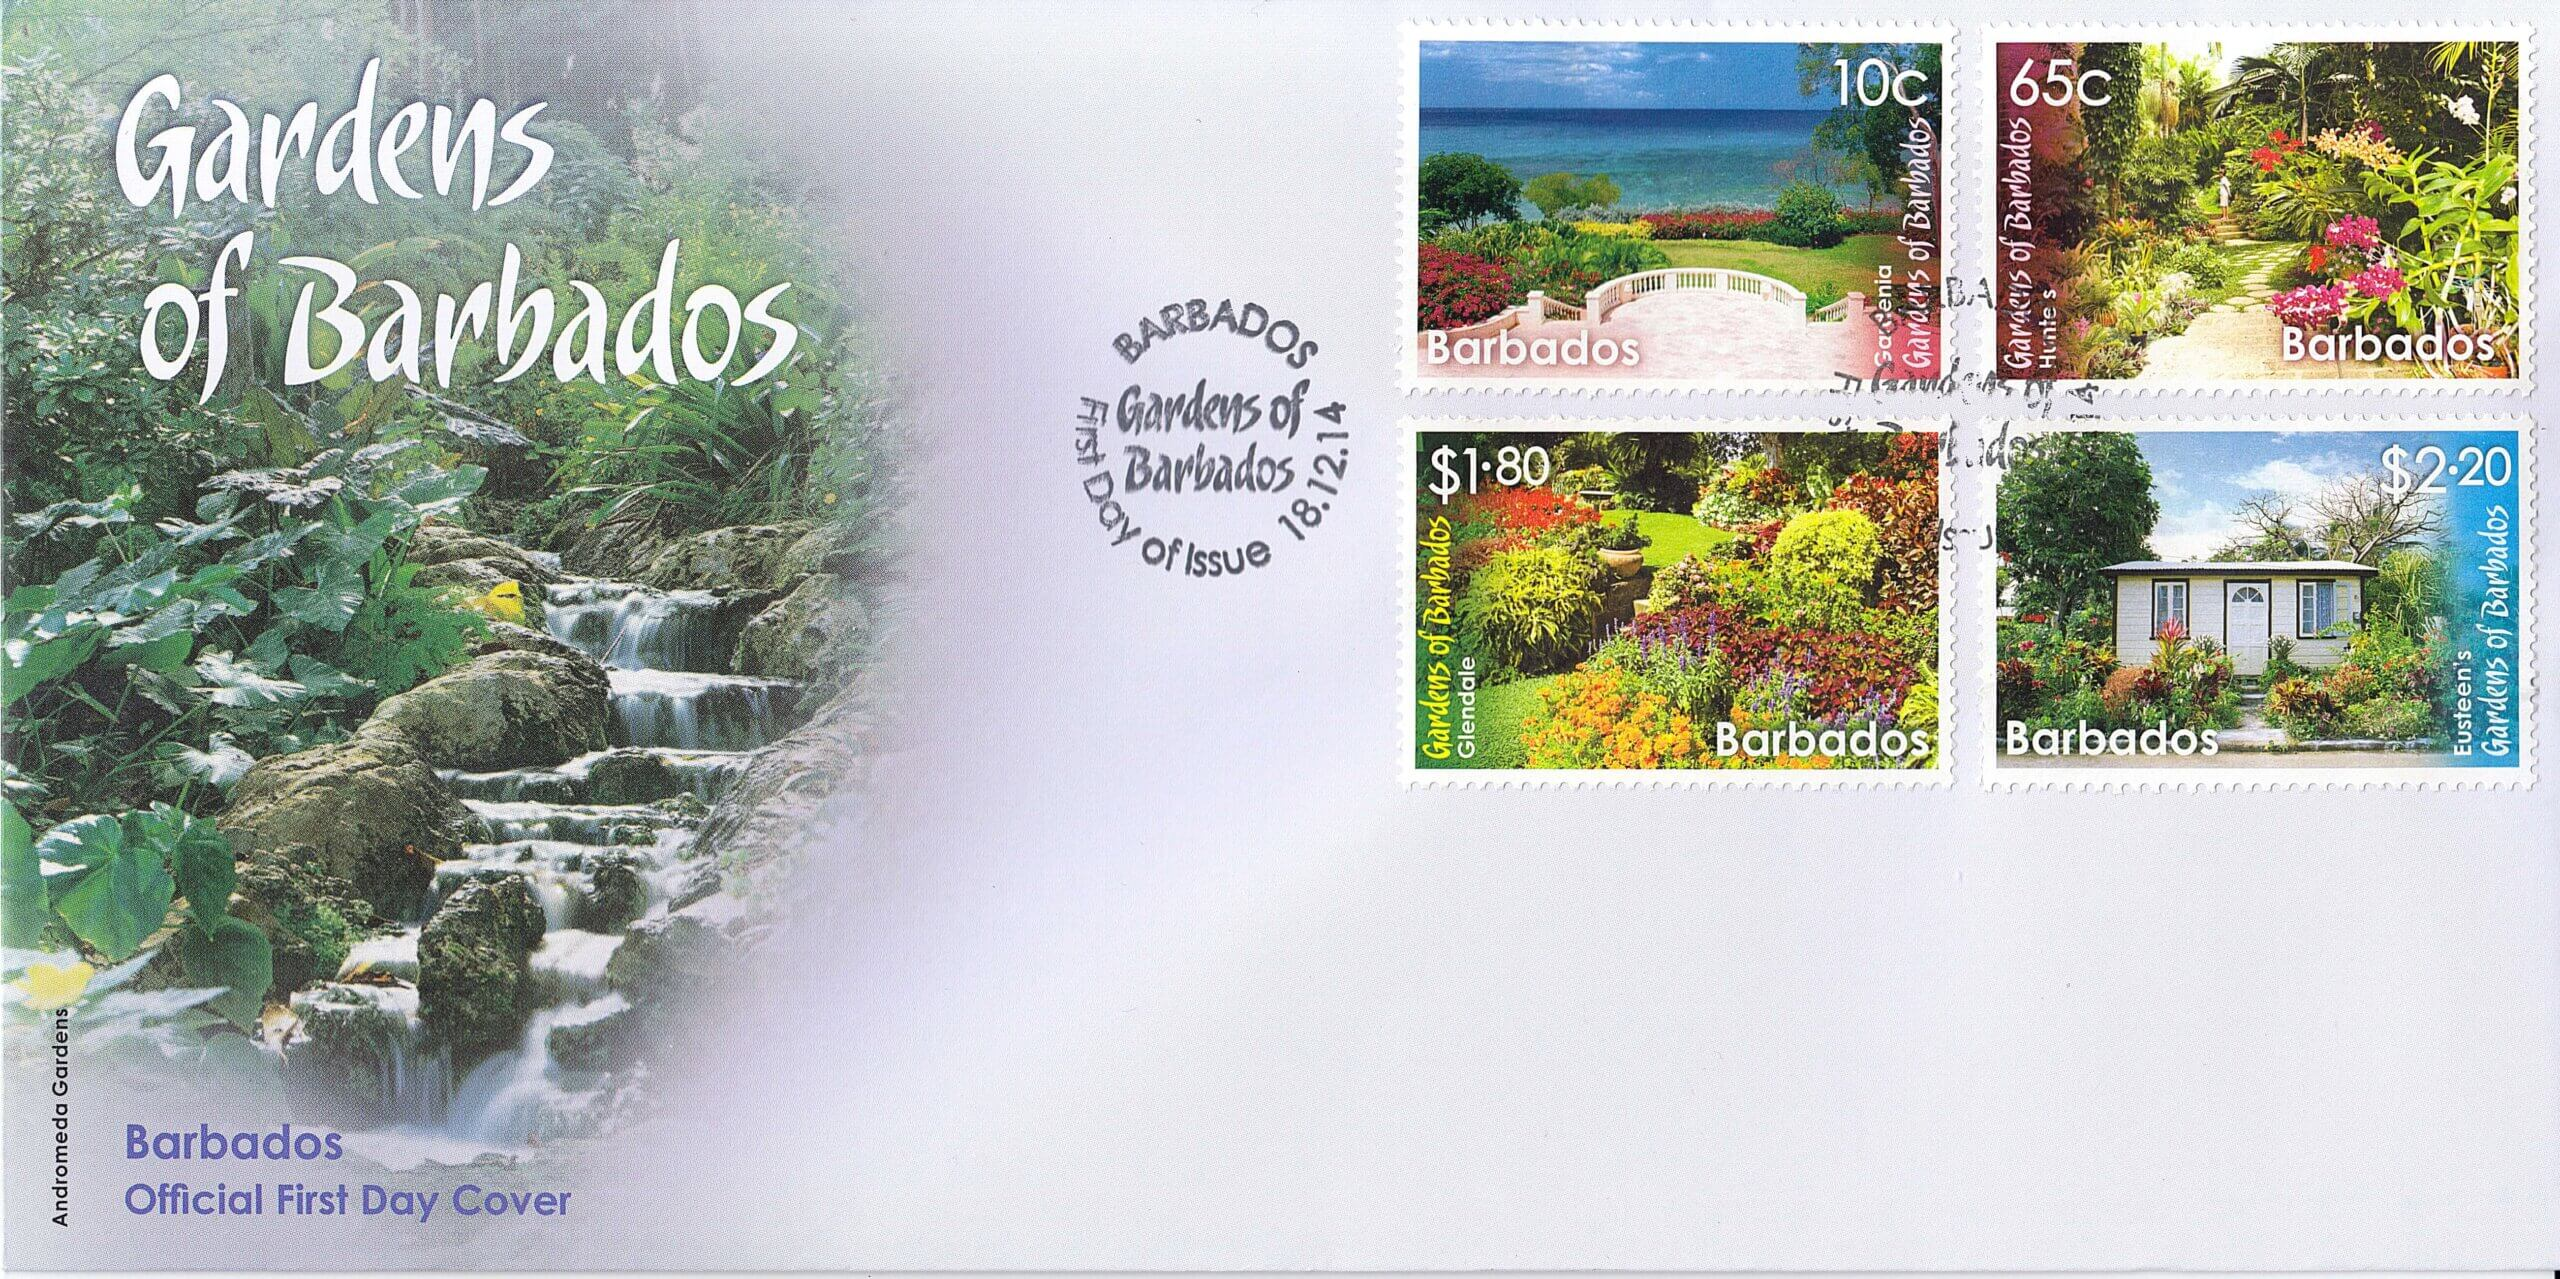 The Gardens of Barbados First Day Cover